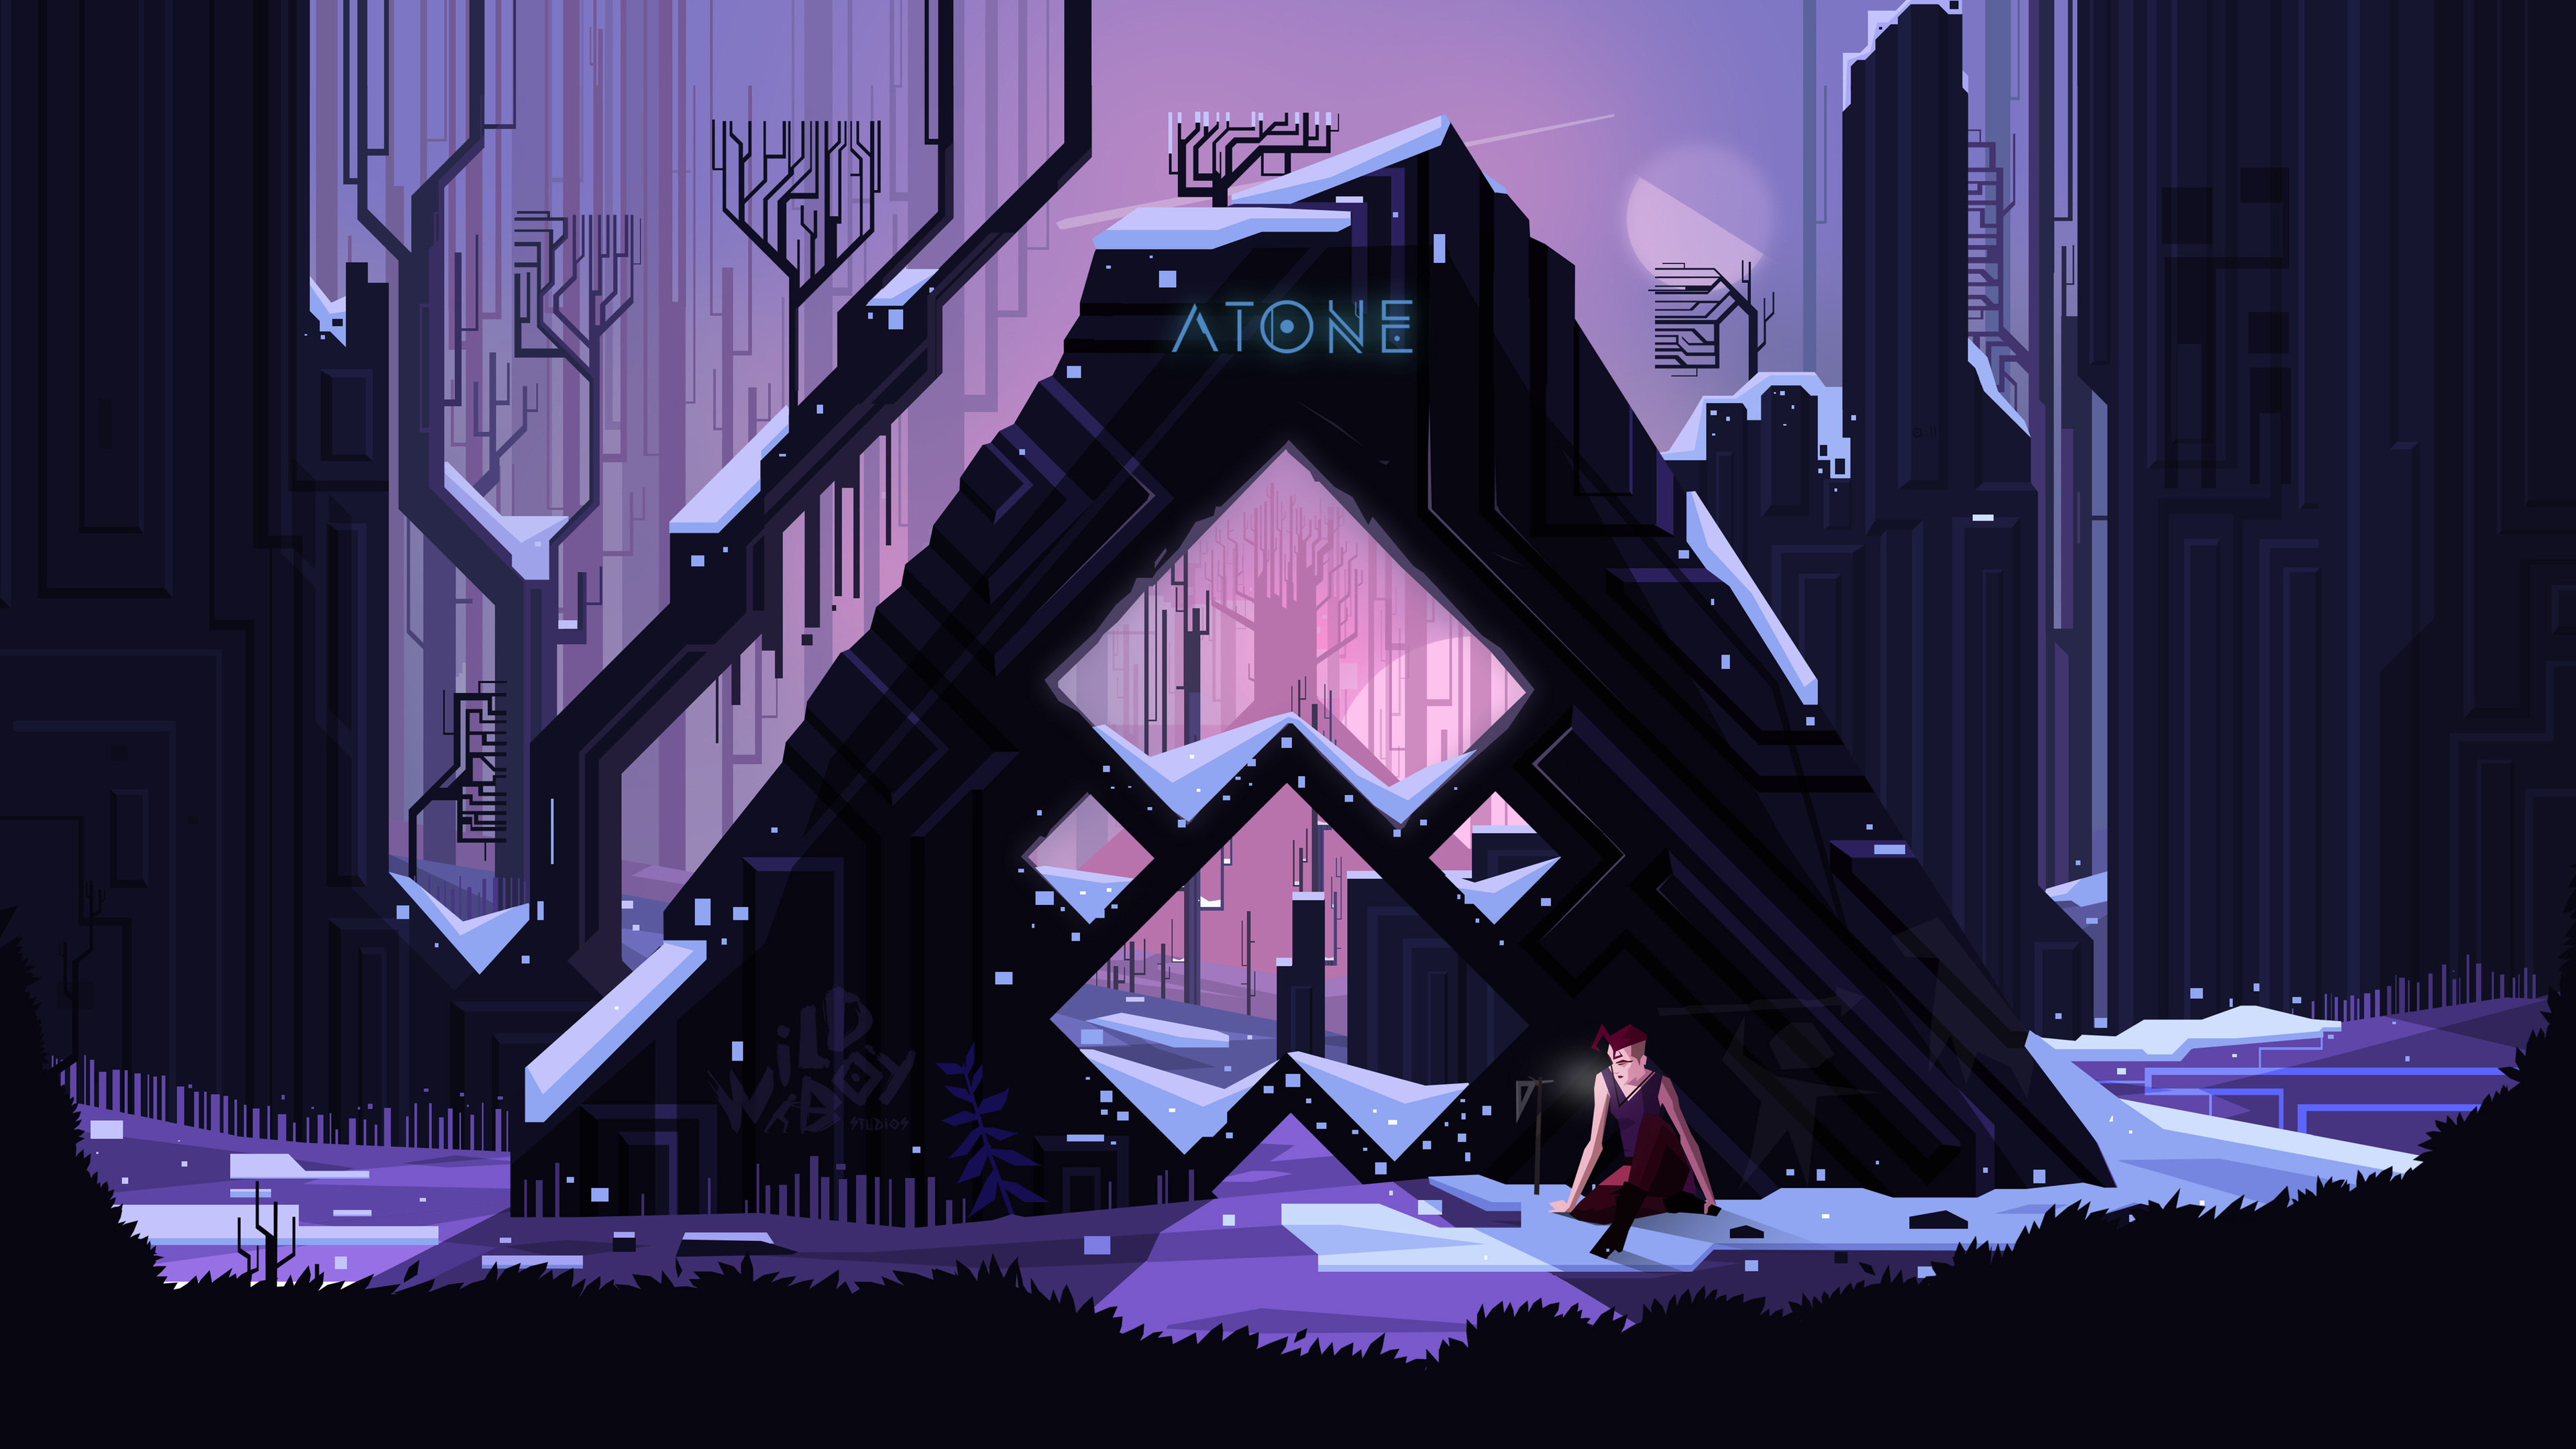 atone game 2018 1537692030 - ATONE Game 2018 - hd-wallpapers, games wallpapers, atone wallpapers, 5k wallpapers, 4k-wallpapers, 2018 games wallpapers